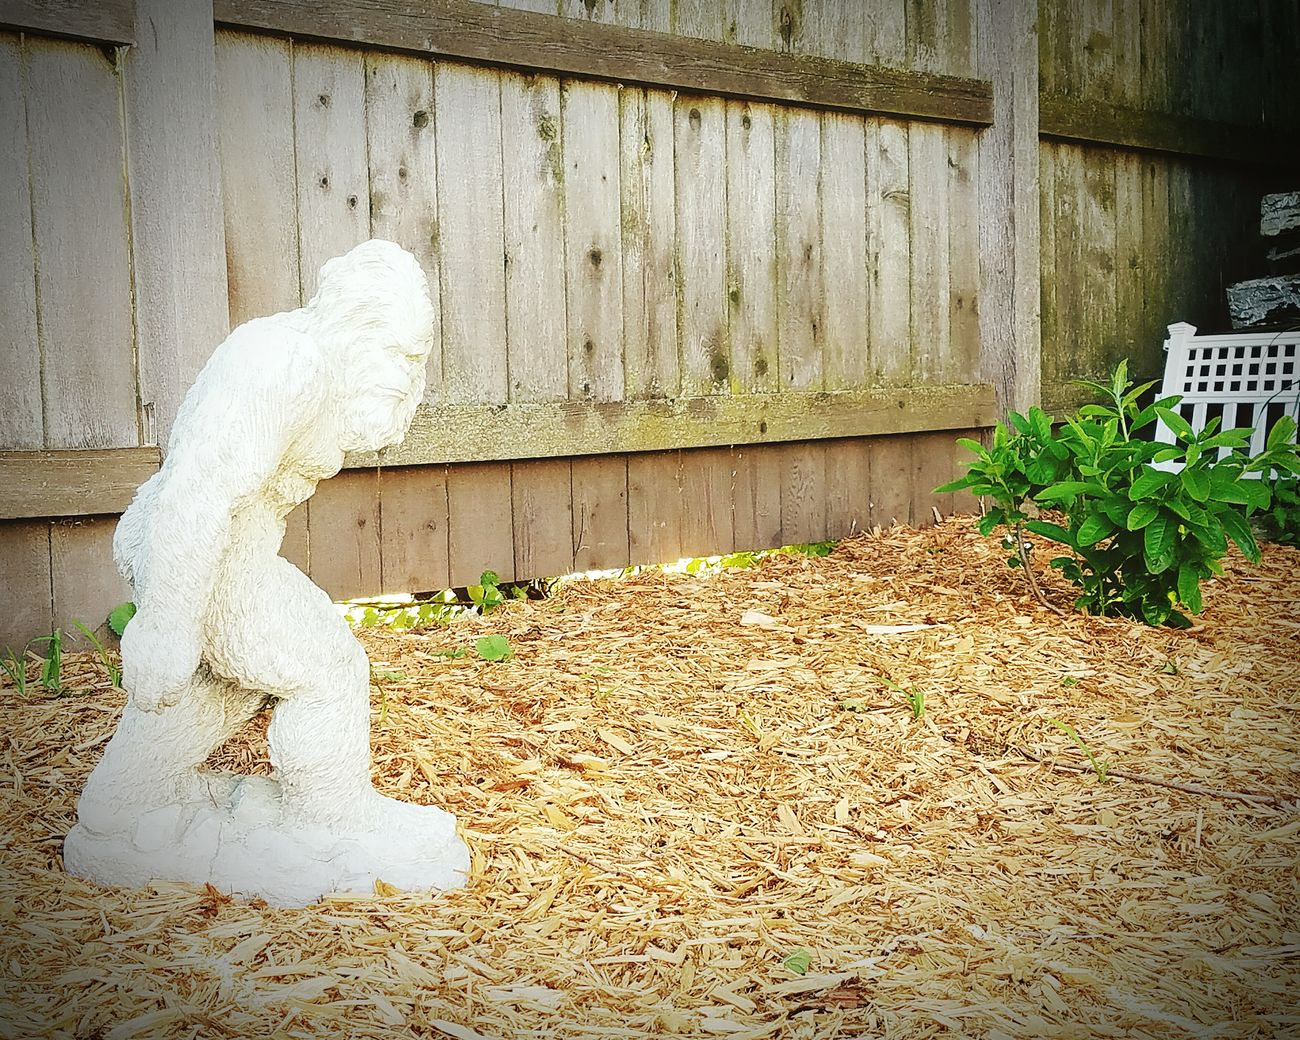 Taking Photos Sasquatch Backyard Photography Backyard Of House Garden Statue Hanging Out